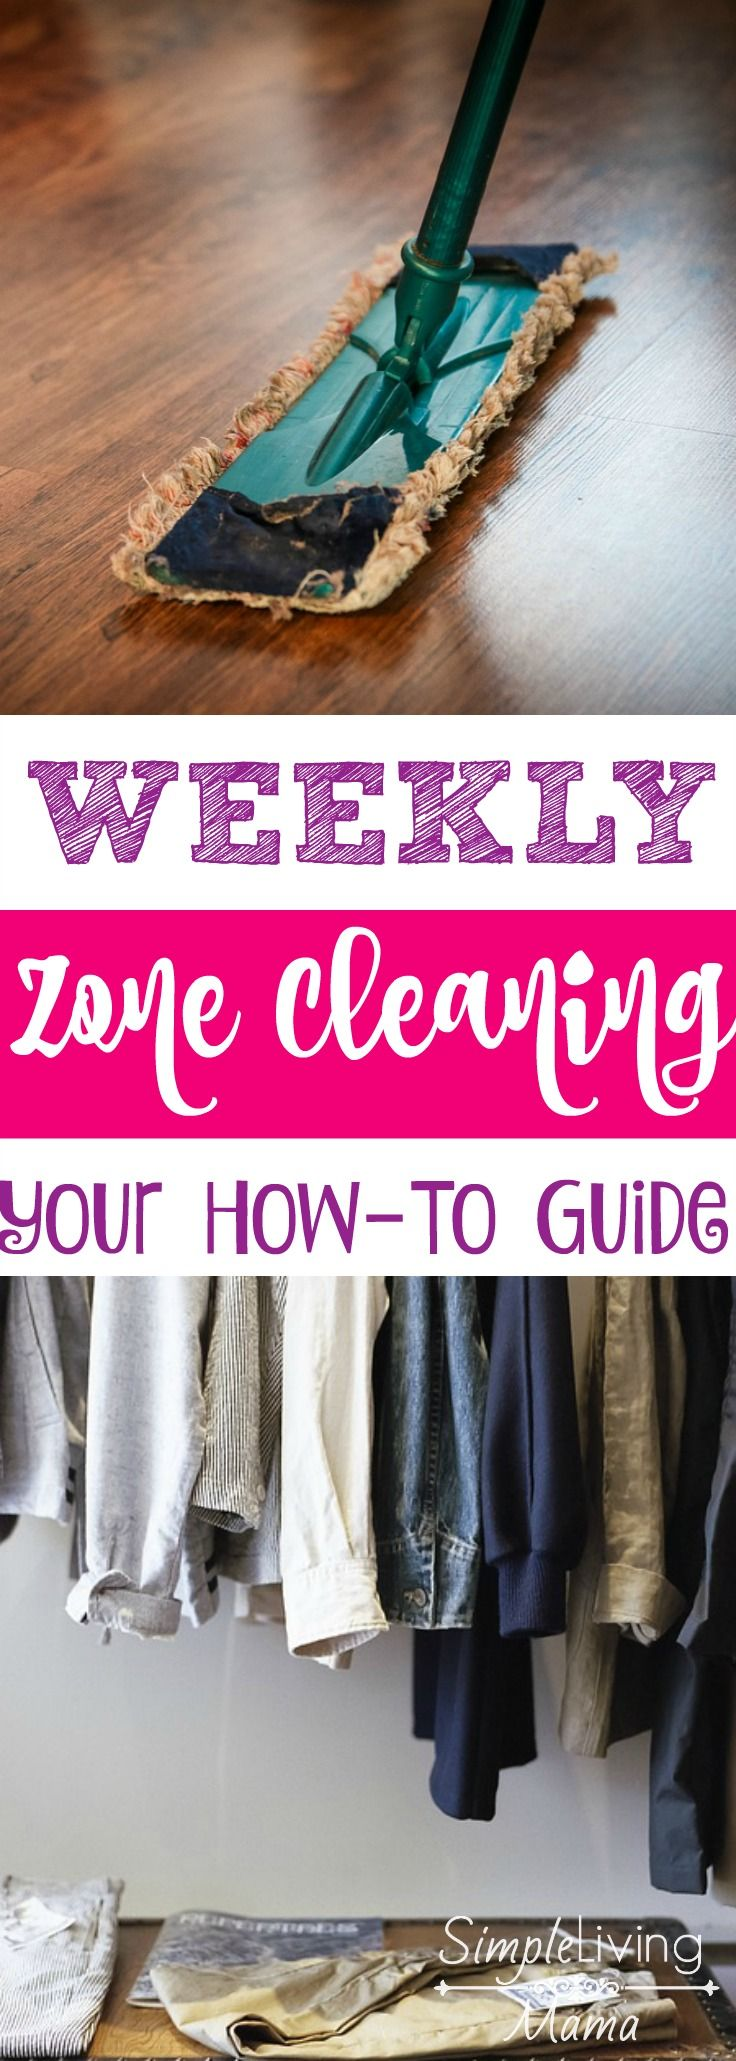 Weekly Zone Cleaning   A How-To Guide